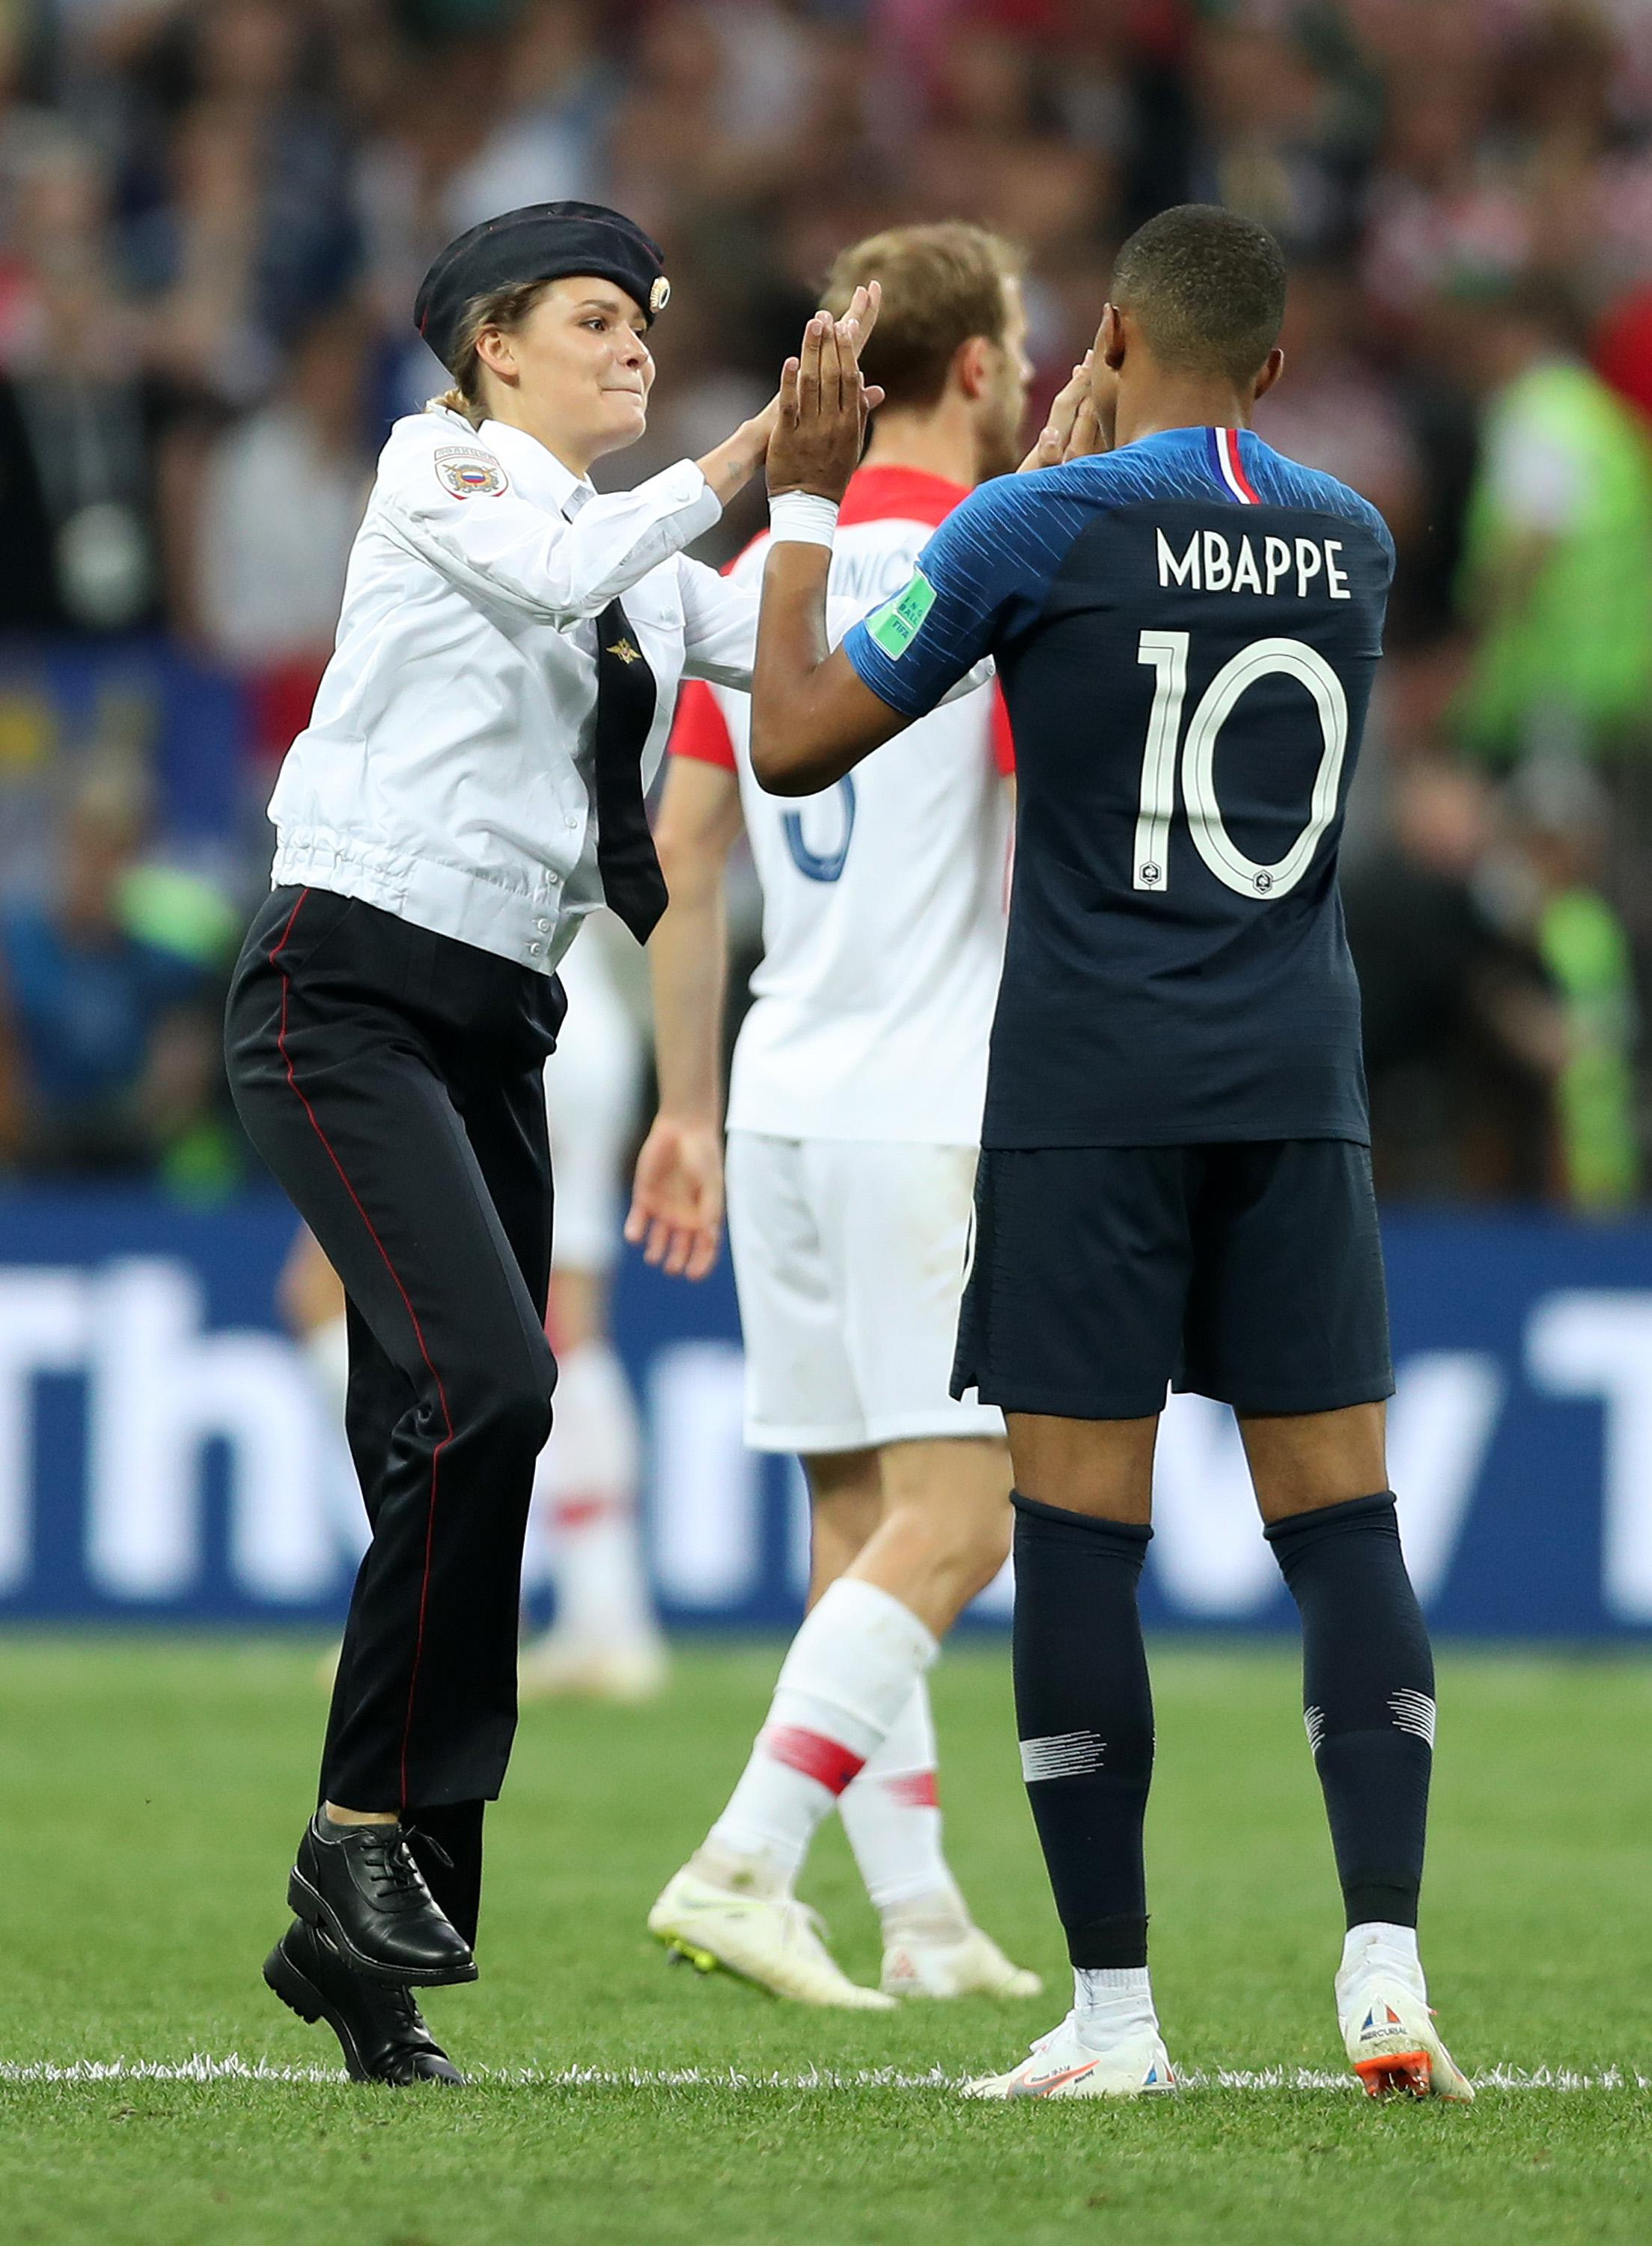 A pitch invader high fives Kylian Mbappe of France during the 2018 FIFA World Cup Final between France and Croatia at Luzhniki Stadium on July 15, 2018 in Moscow, Russia.